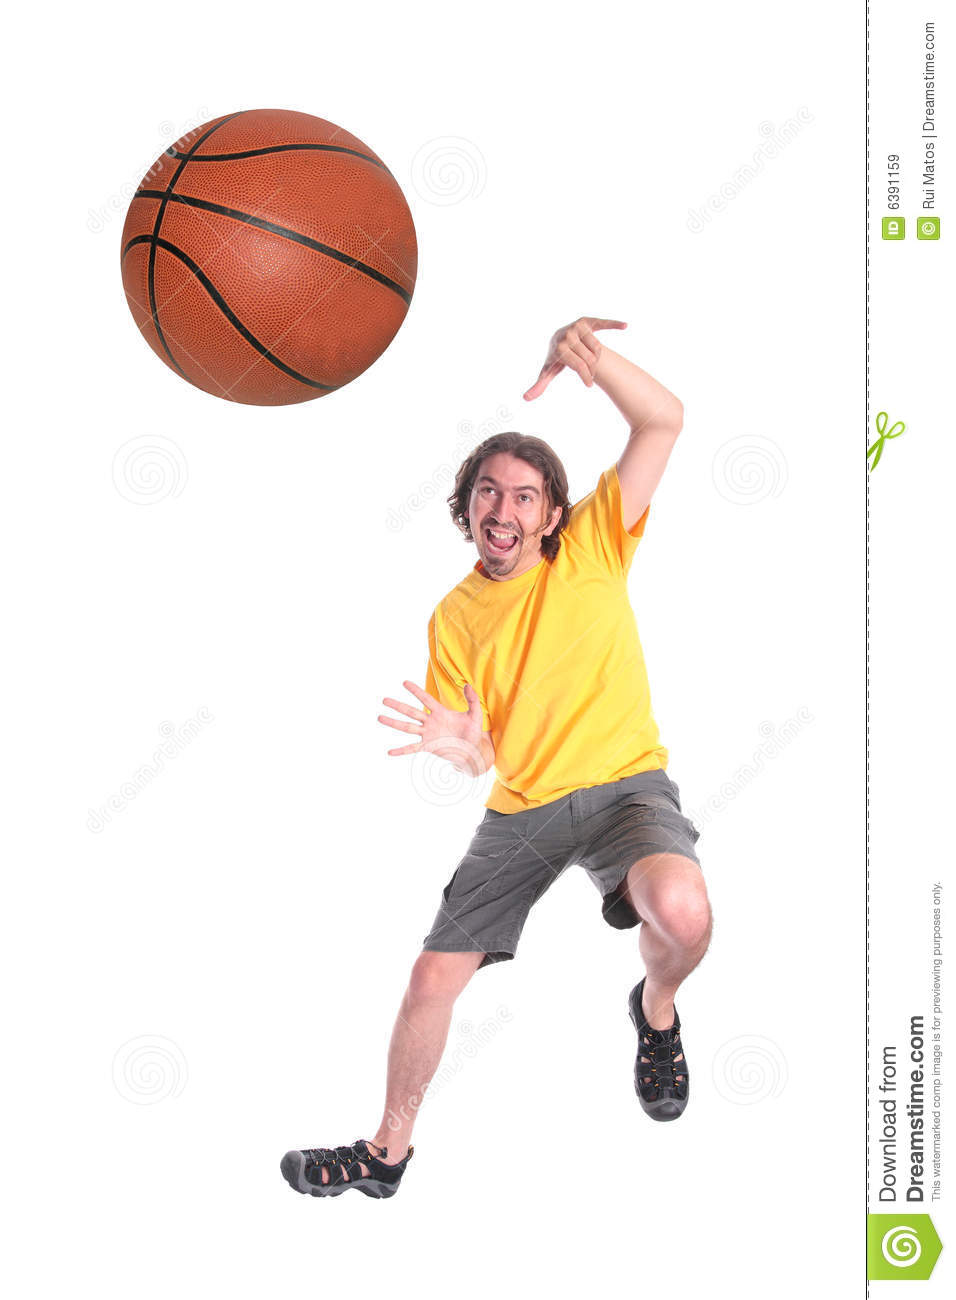 Kids Playing Basketball Clipart - Boy Playing Basketball Clipart, HD Png  Download - vhv